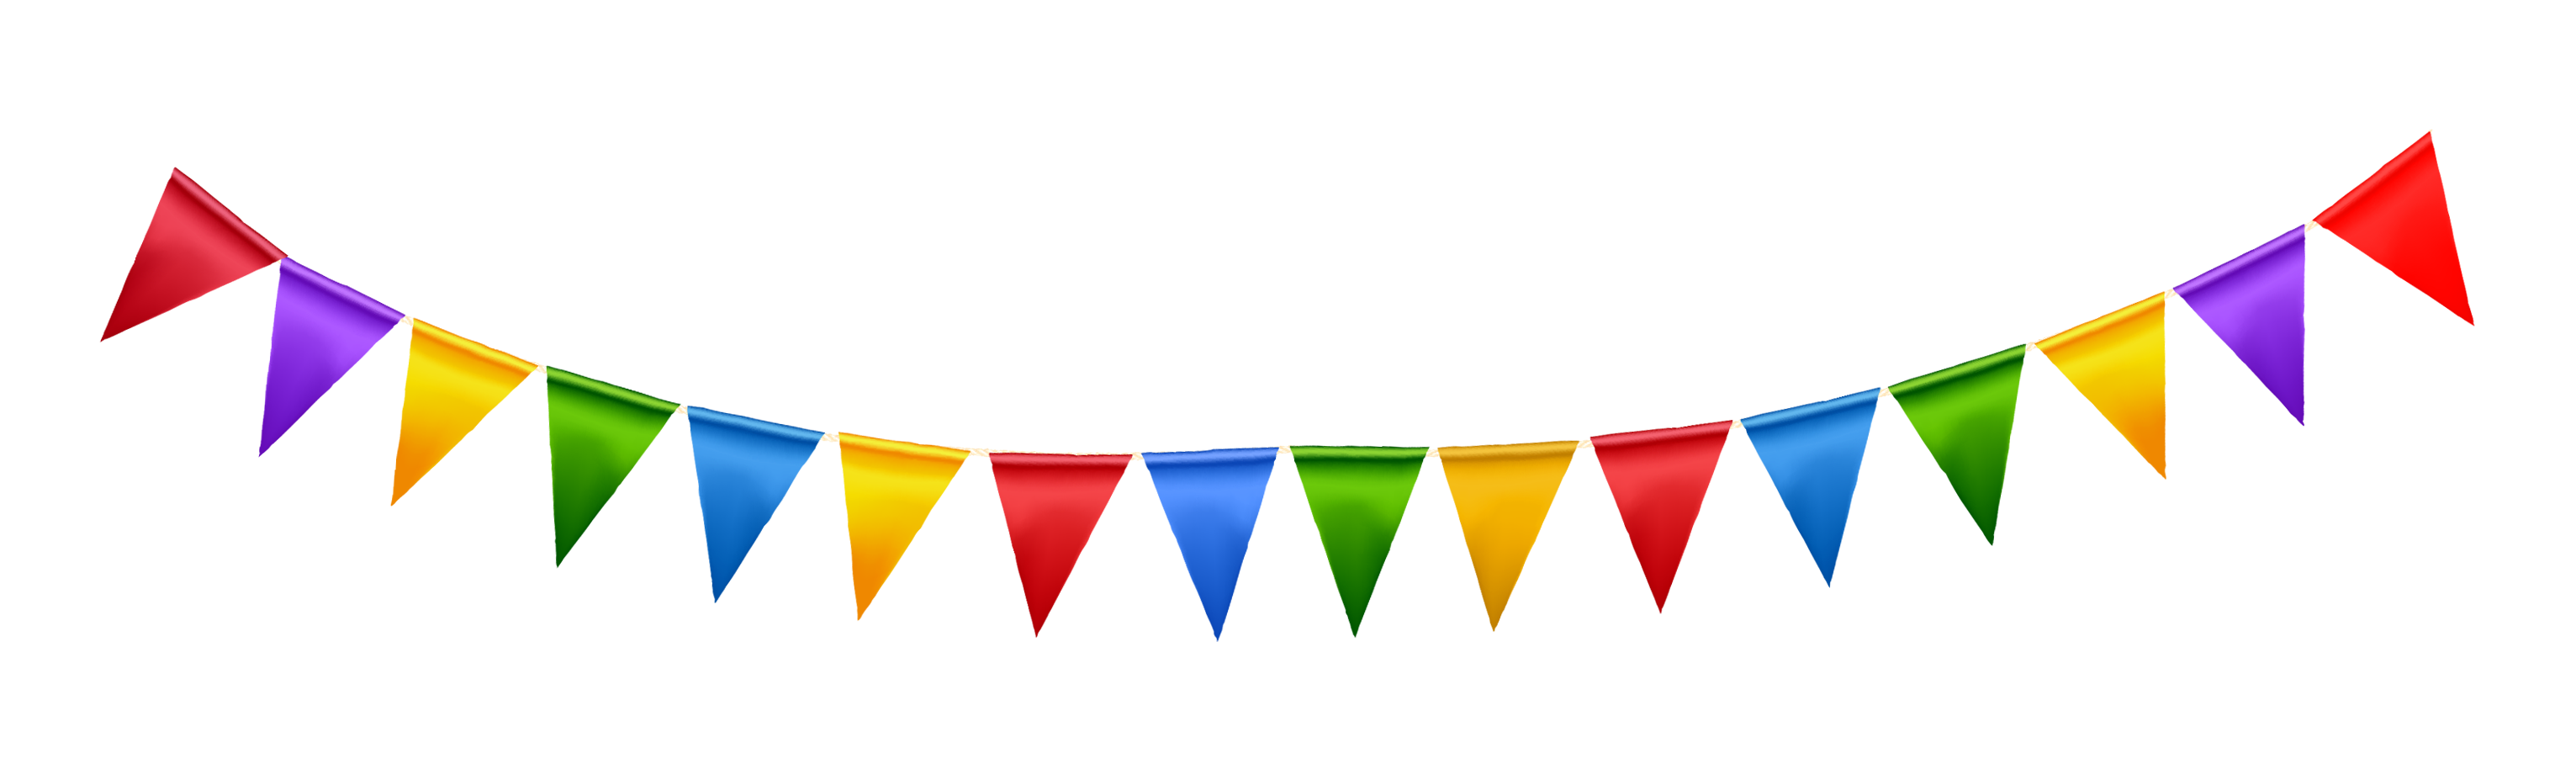 png royalty free library Streamers clipart. Party streamer transparent png